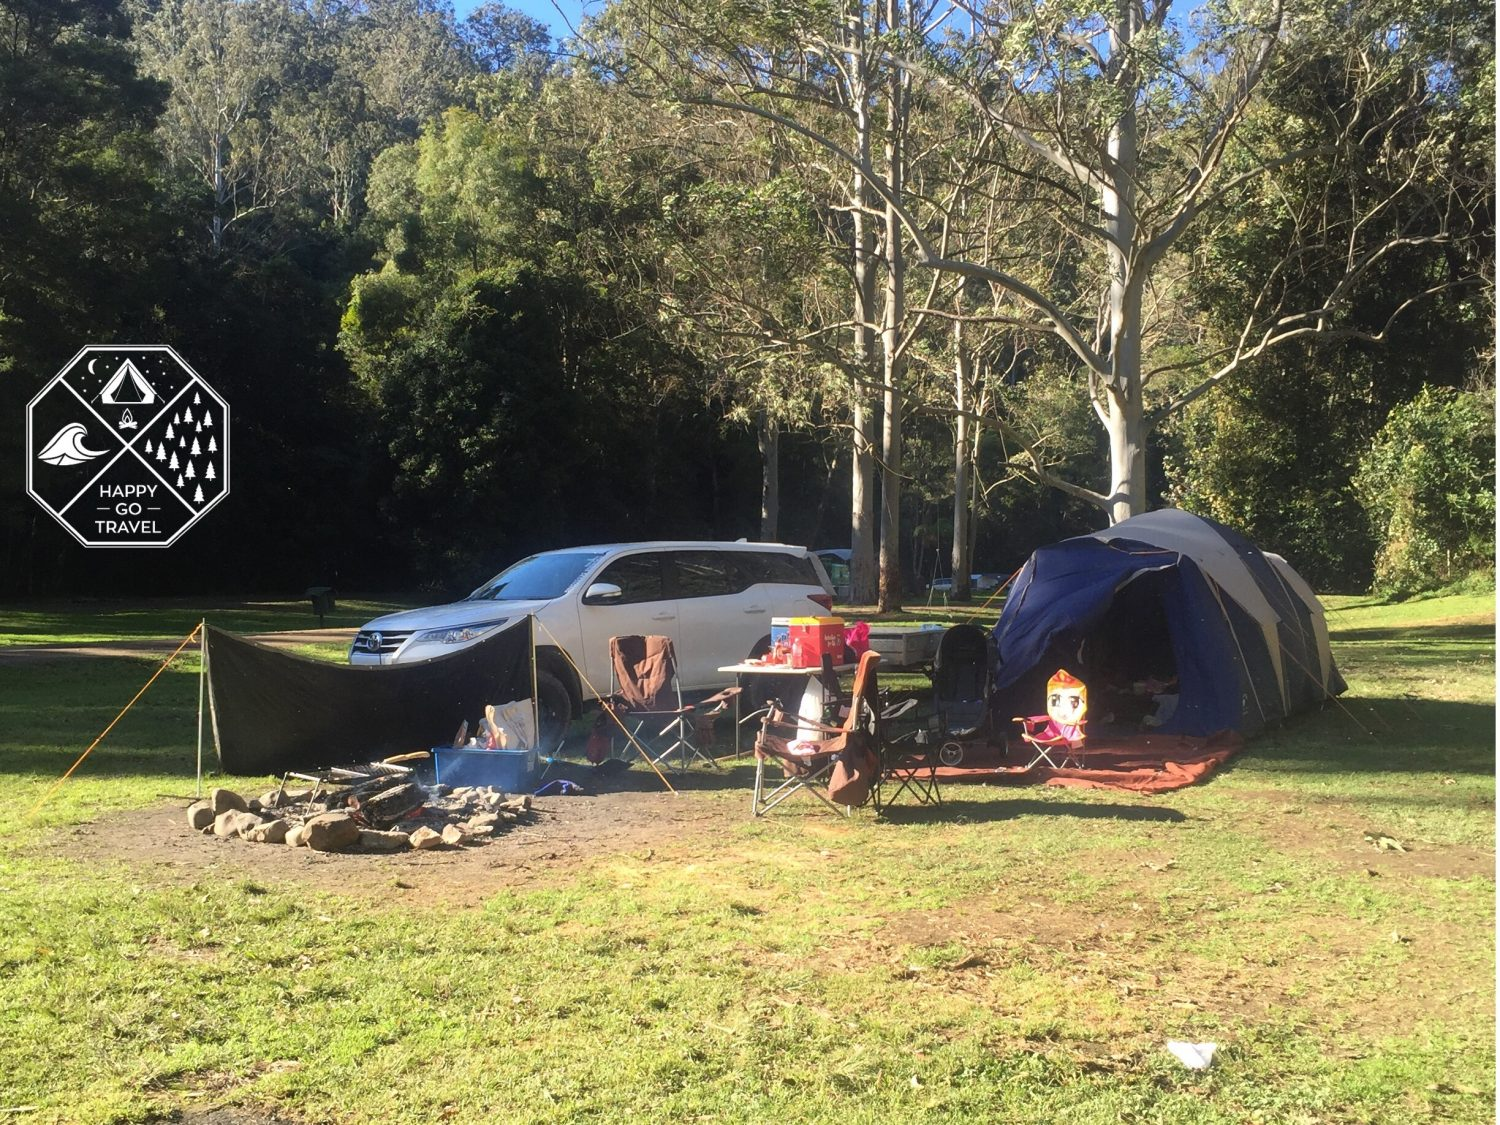 Toyota Fortuner camping Chichester State Forest